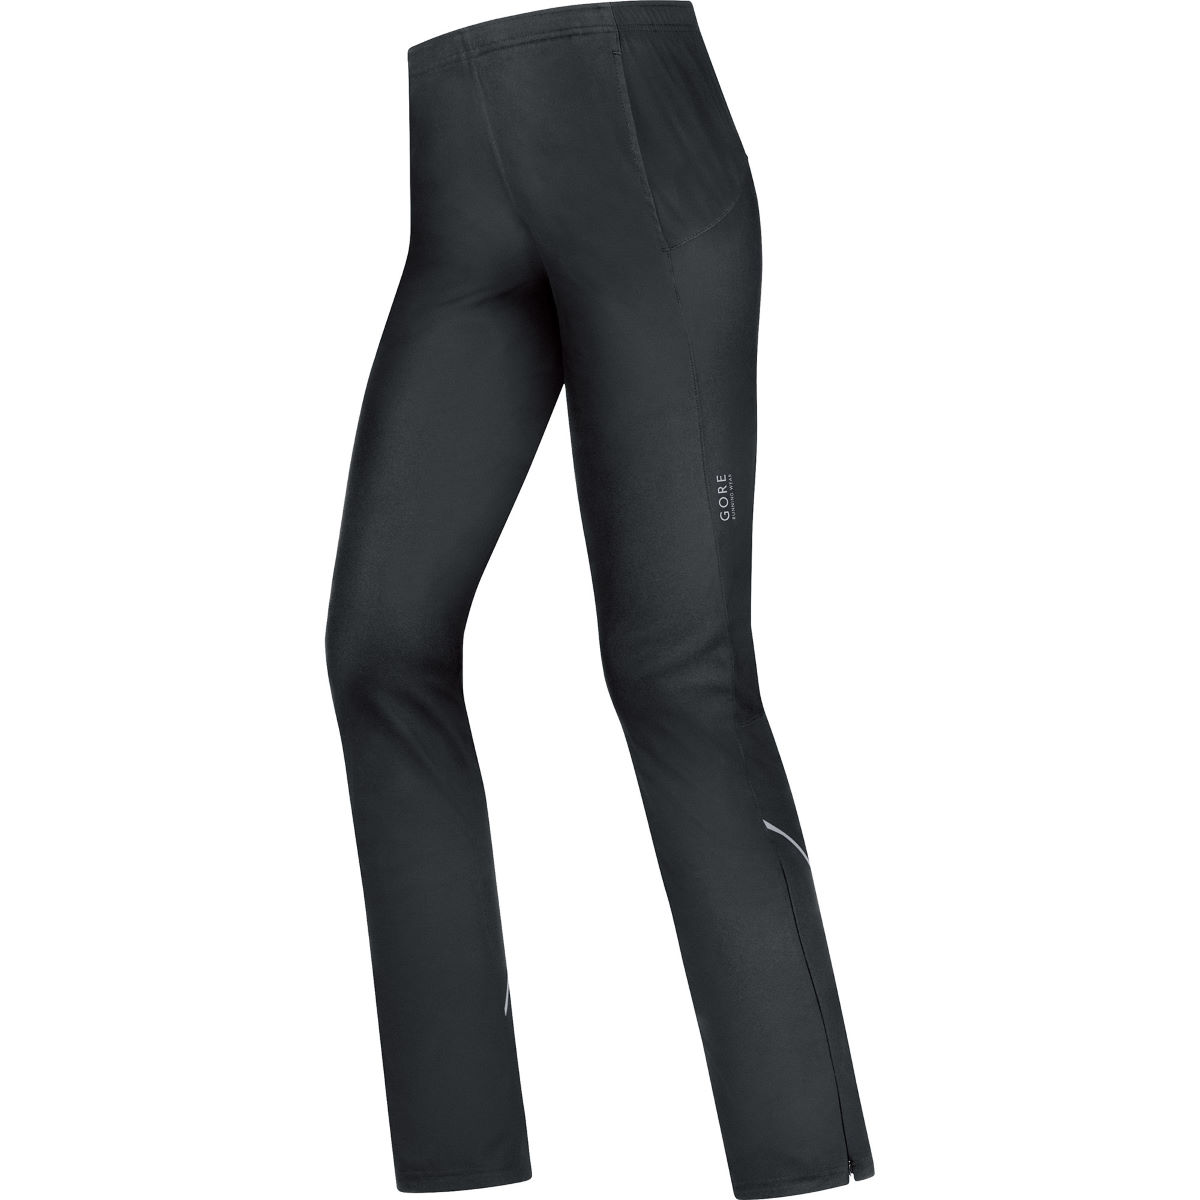 Pantalon Femme Gore Running Wear WINDSTOPPER® Soft Shell - 36 Noir